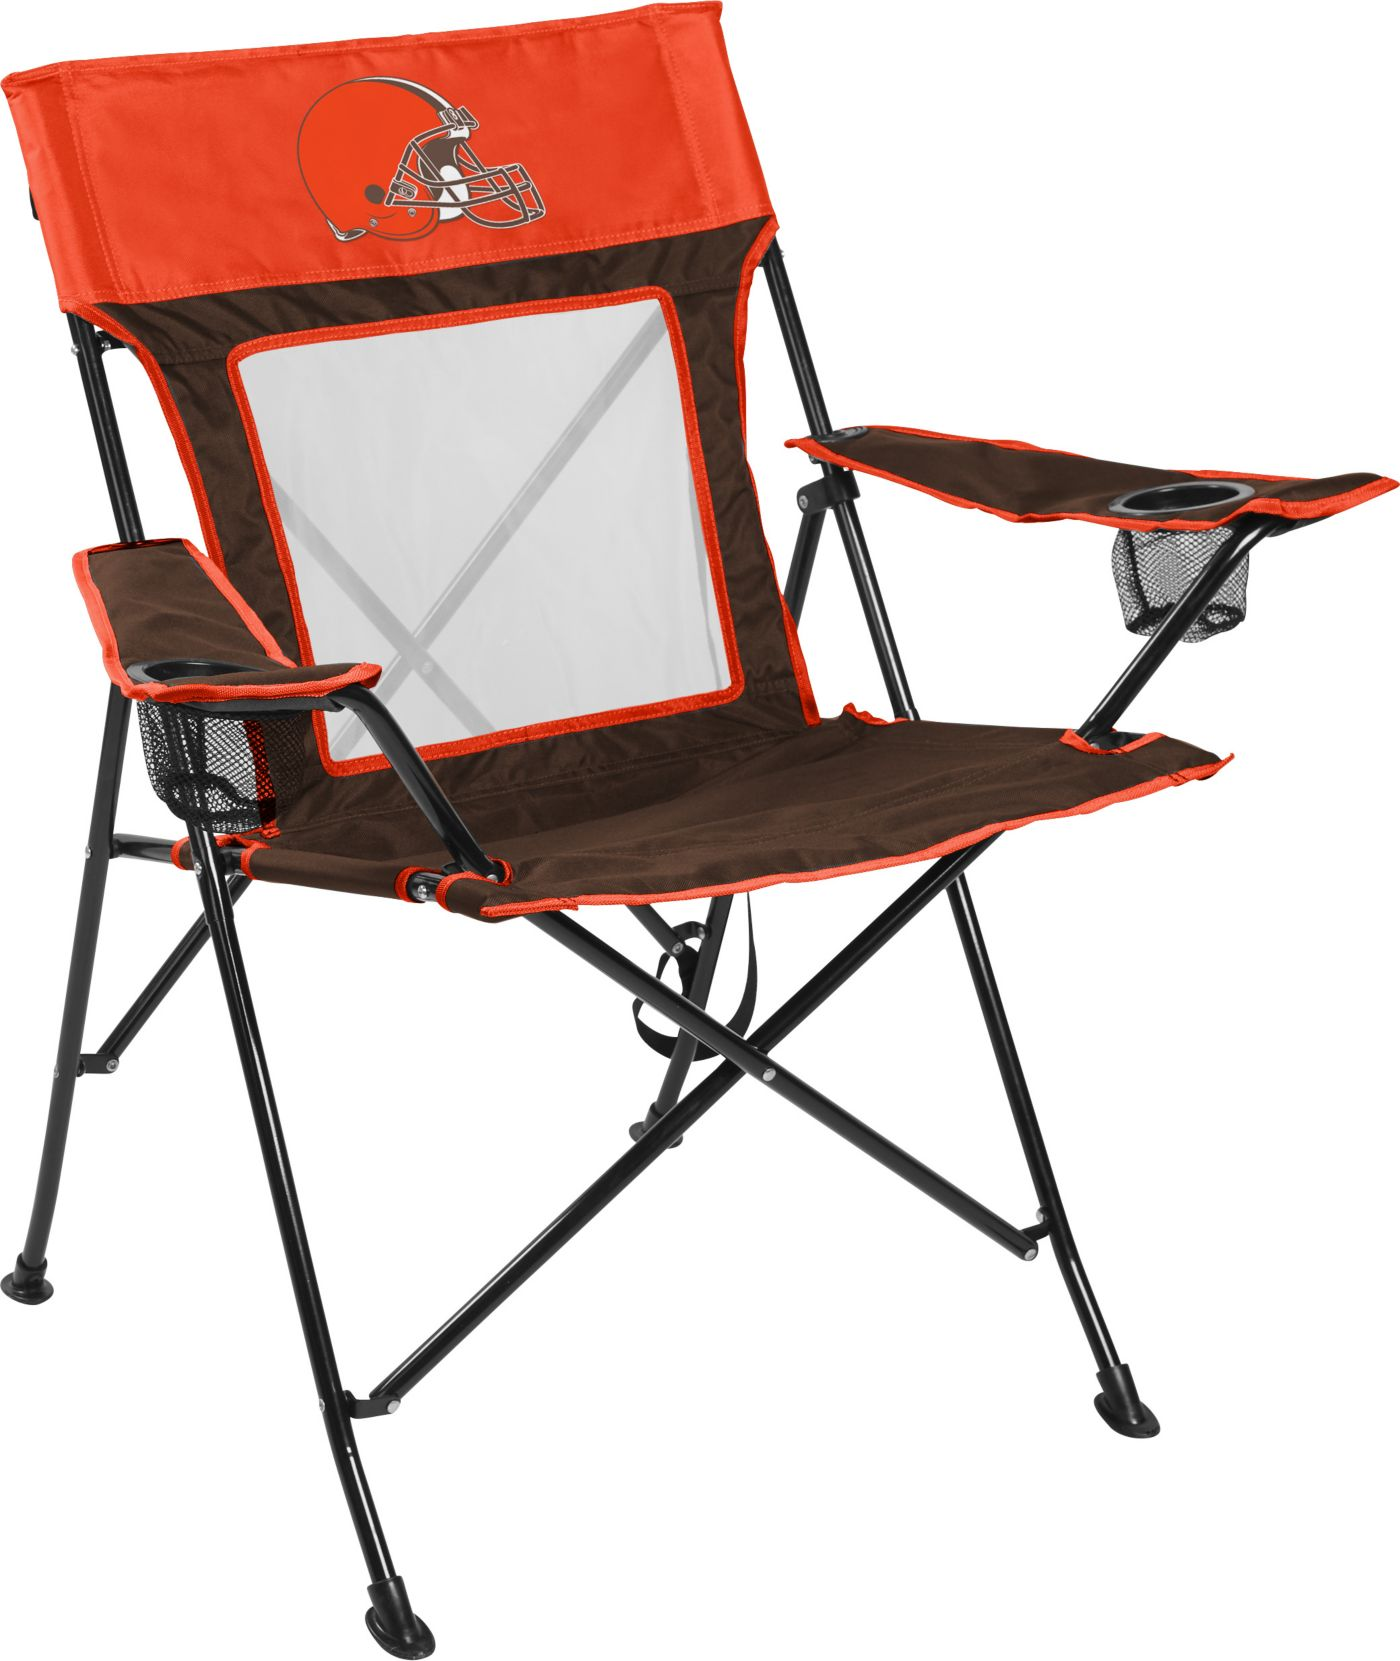 Rawlings Cleveland Browns Game Changer Chair